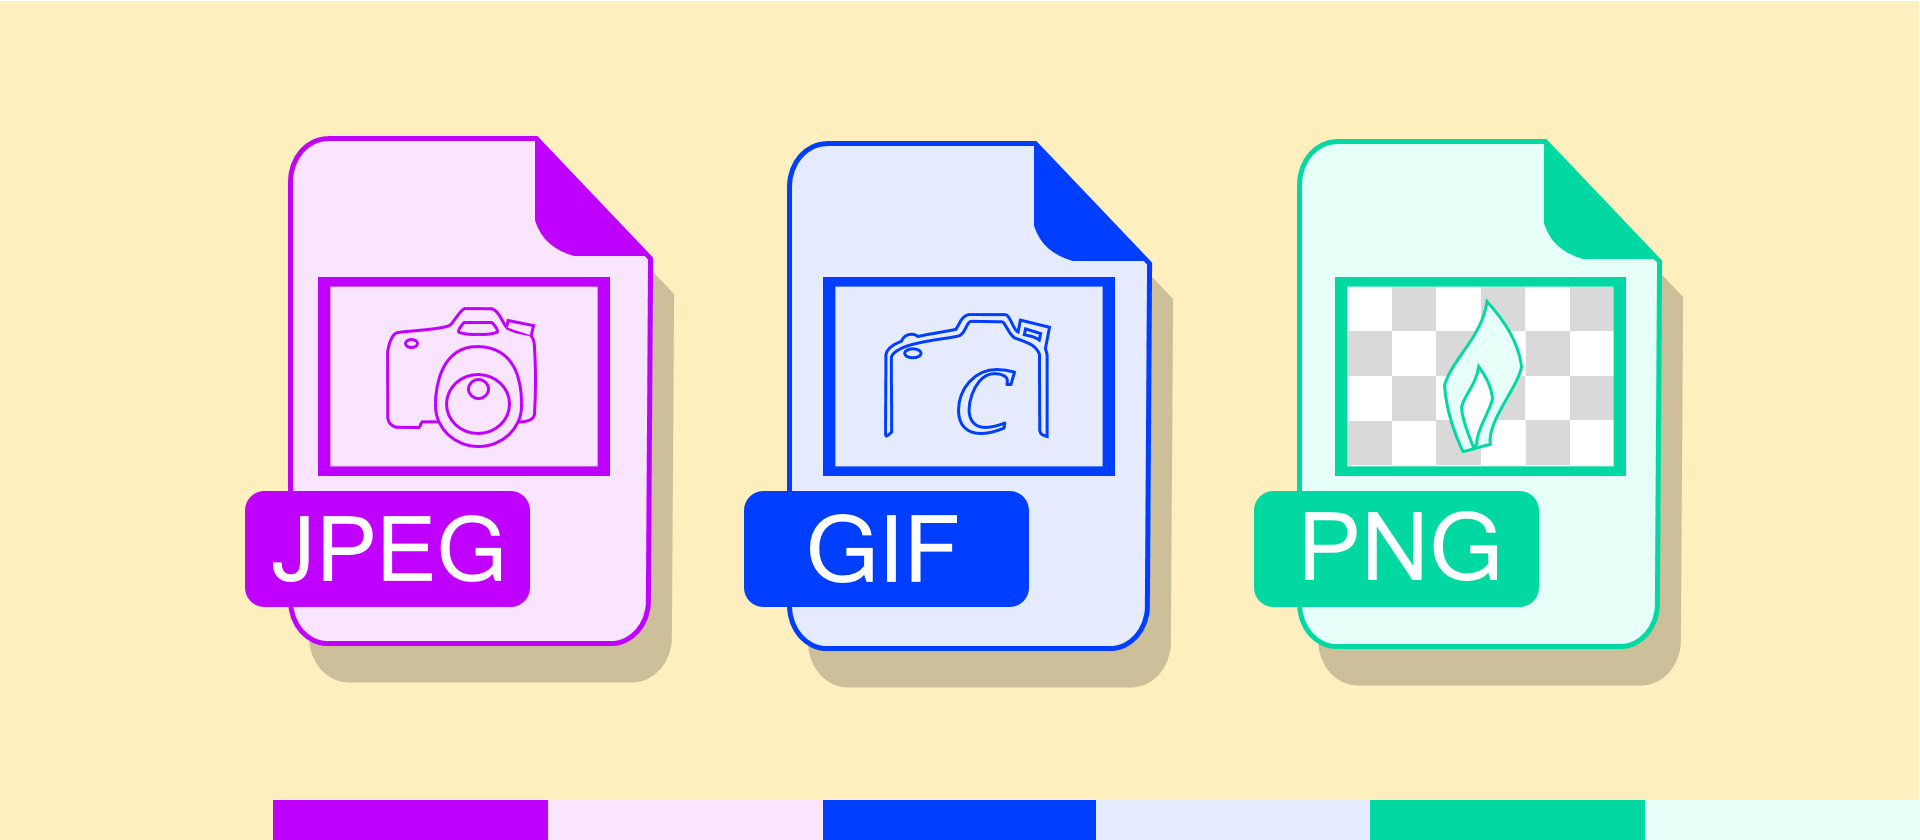 What is the difference between JPEG GIF and PNG